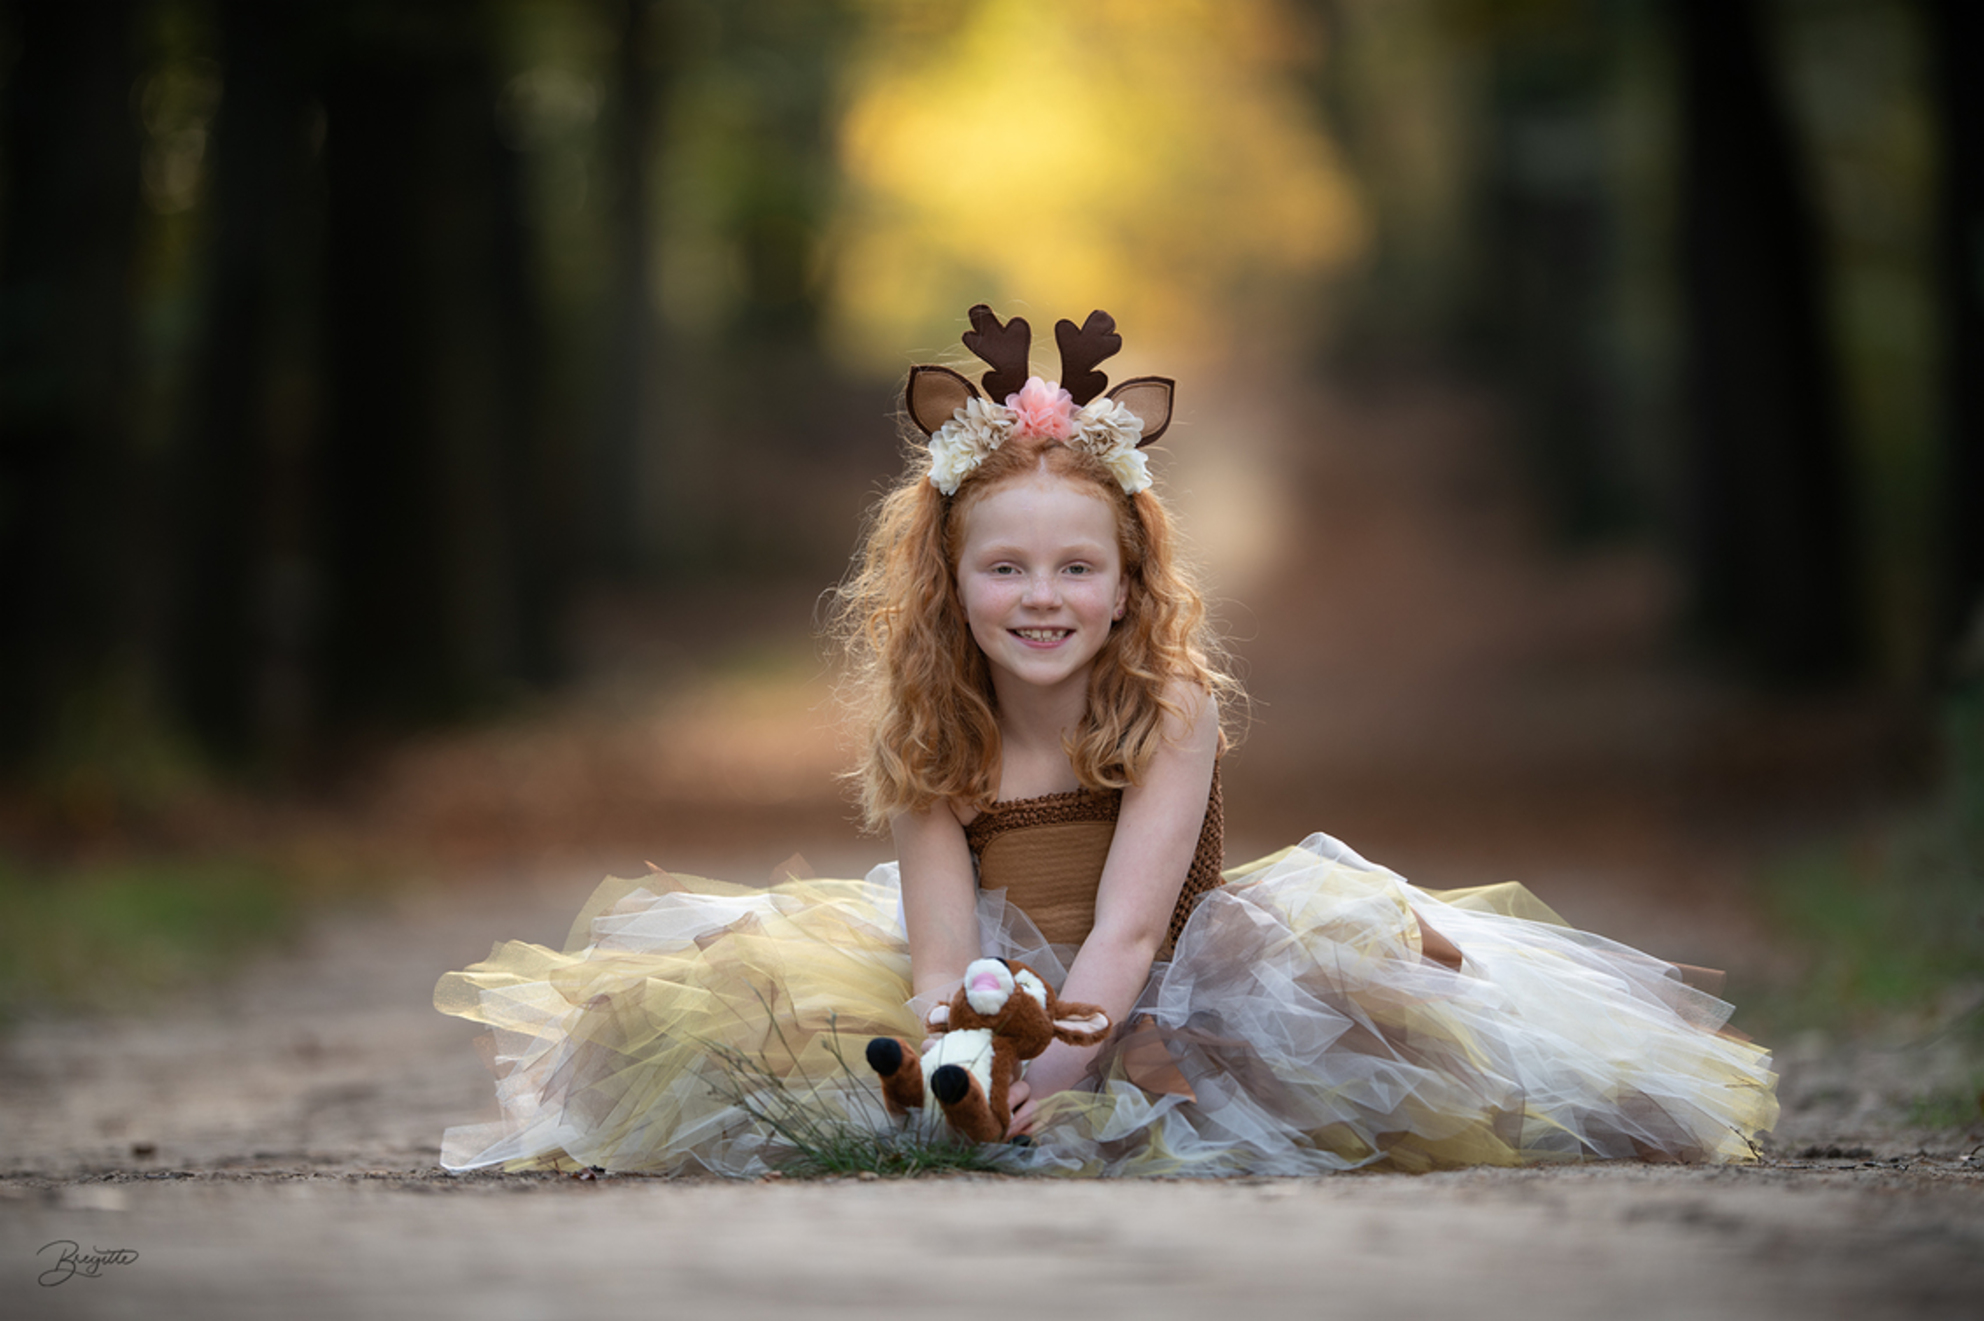 Fairy tales in the autumn forest - Fairy tales in the autumn forest - foto door Bregitte op 30-10-2019 - deze foto bevat: meisje, herfstbos, hertje